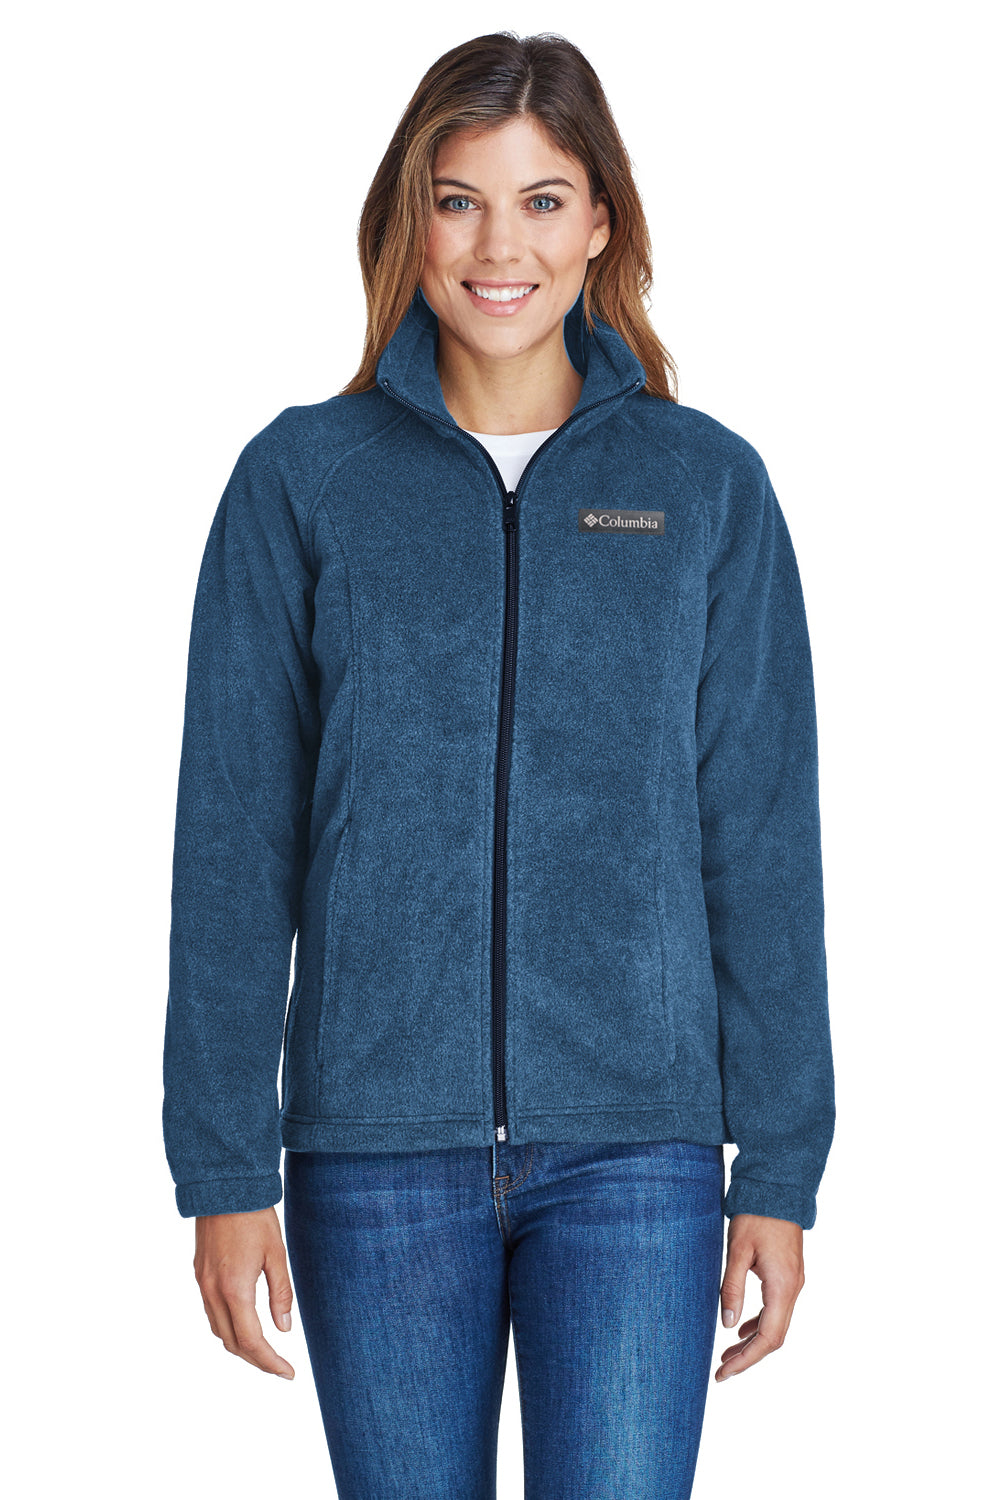 Columbia 6439 Womens Benton Springs Full Zip Fleece Jacket Navy Blue Front